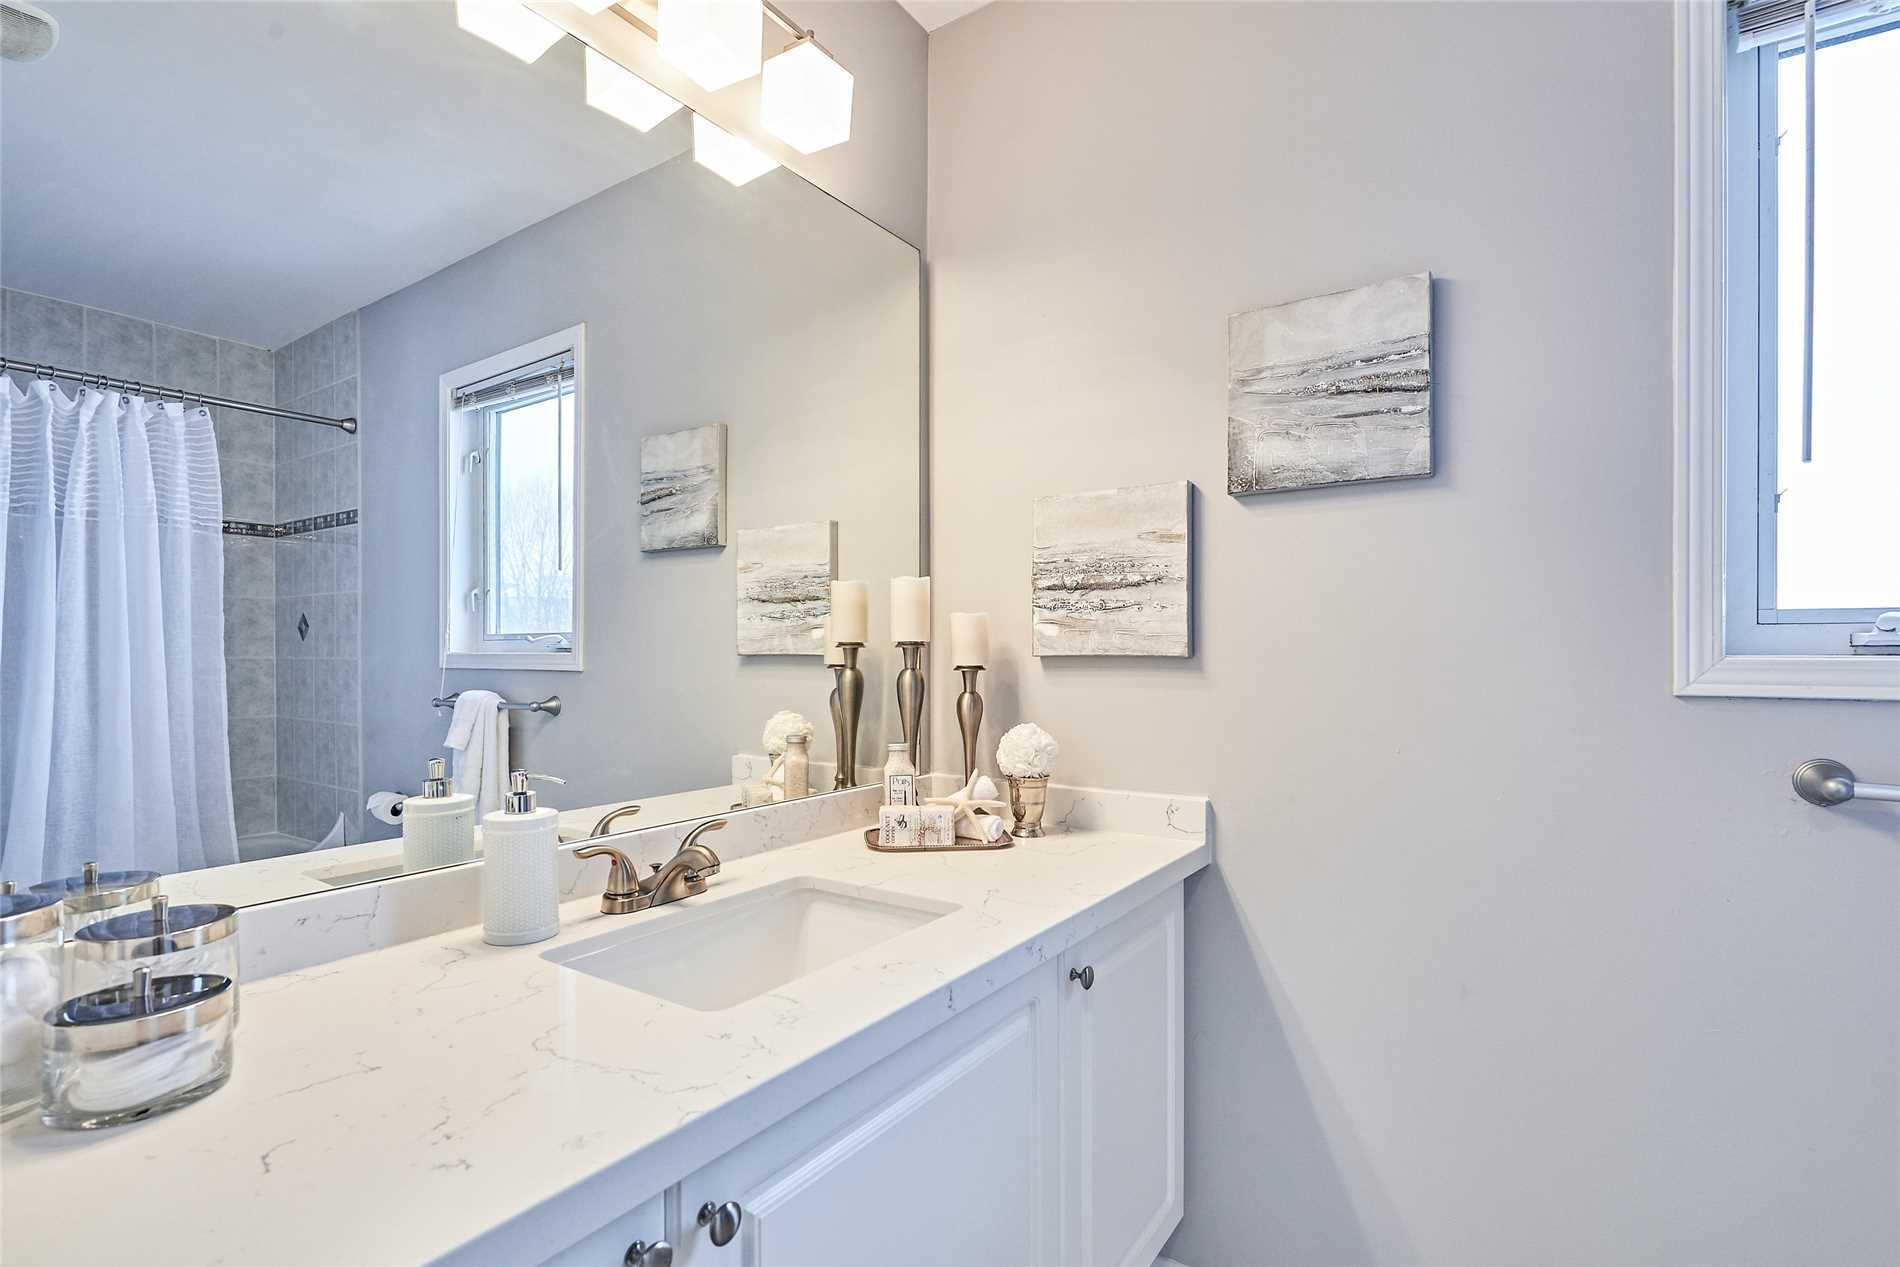 203 Whitby Shores, Whitby, Ontario L1N9N9, 4 Bedrooms Bedrooms, ,4 BathroomsBathrooms,Detached,For Sale,Whitby Shores,E4370525